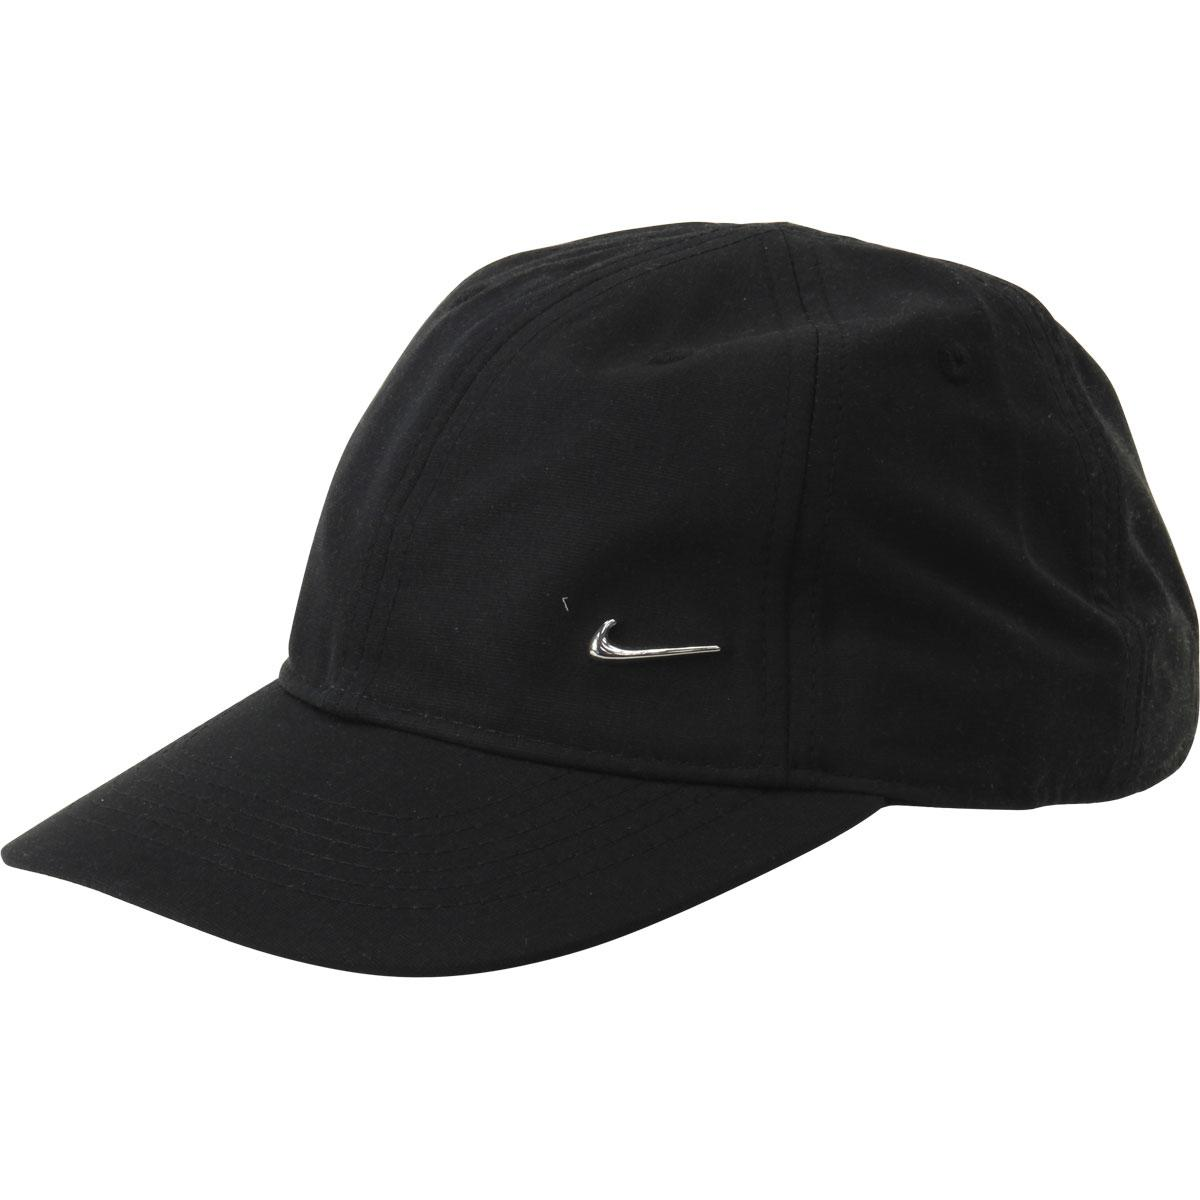 Nike Toddler/Little Boy's Heritage 86 Baseball Cap Hat